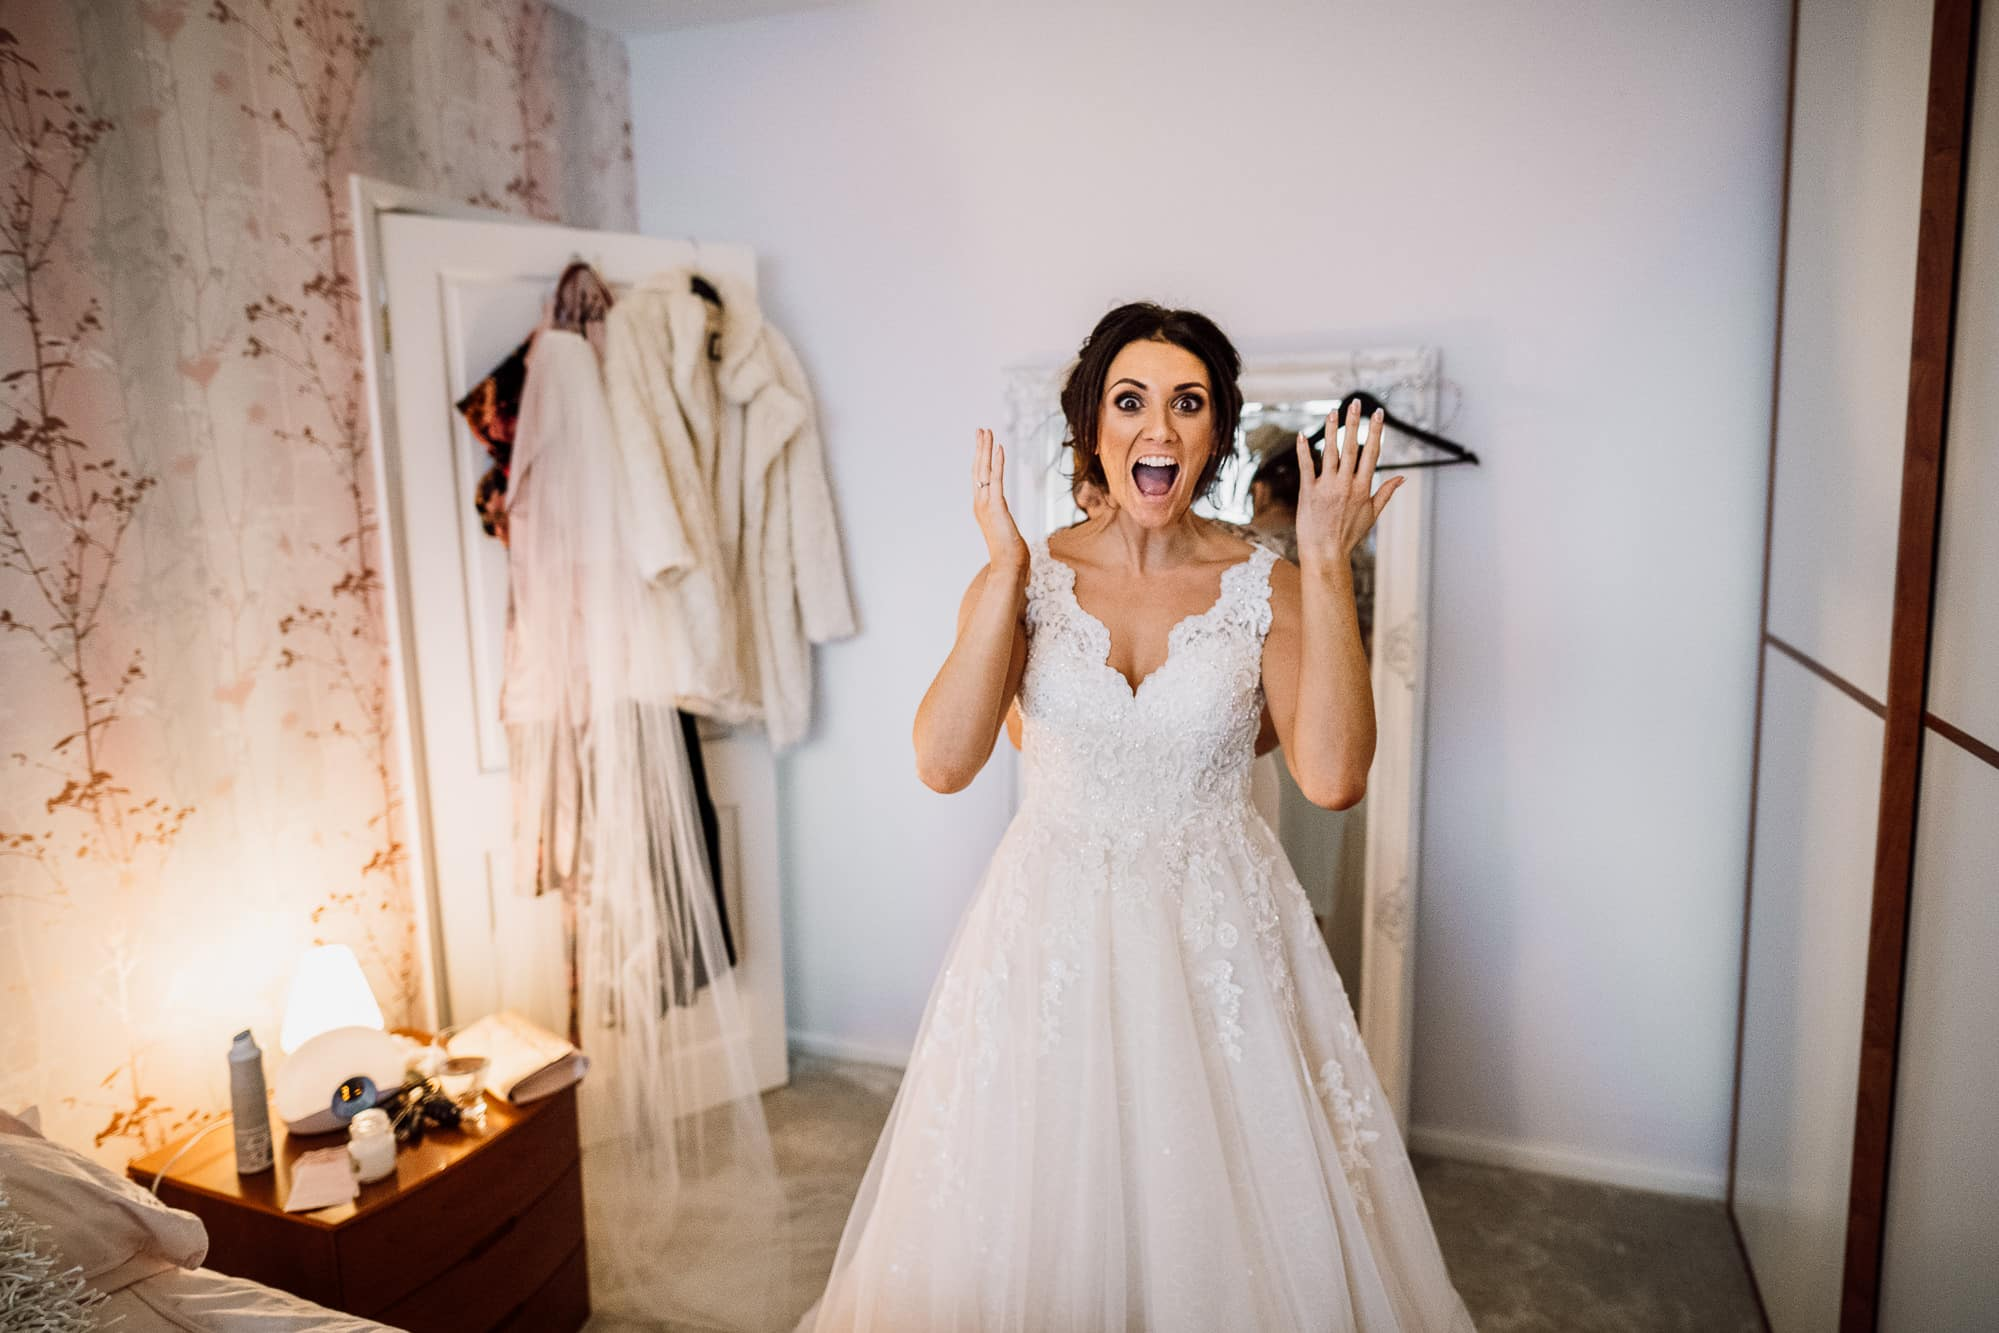 Bride reacting to getting dressed